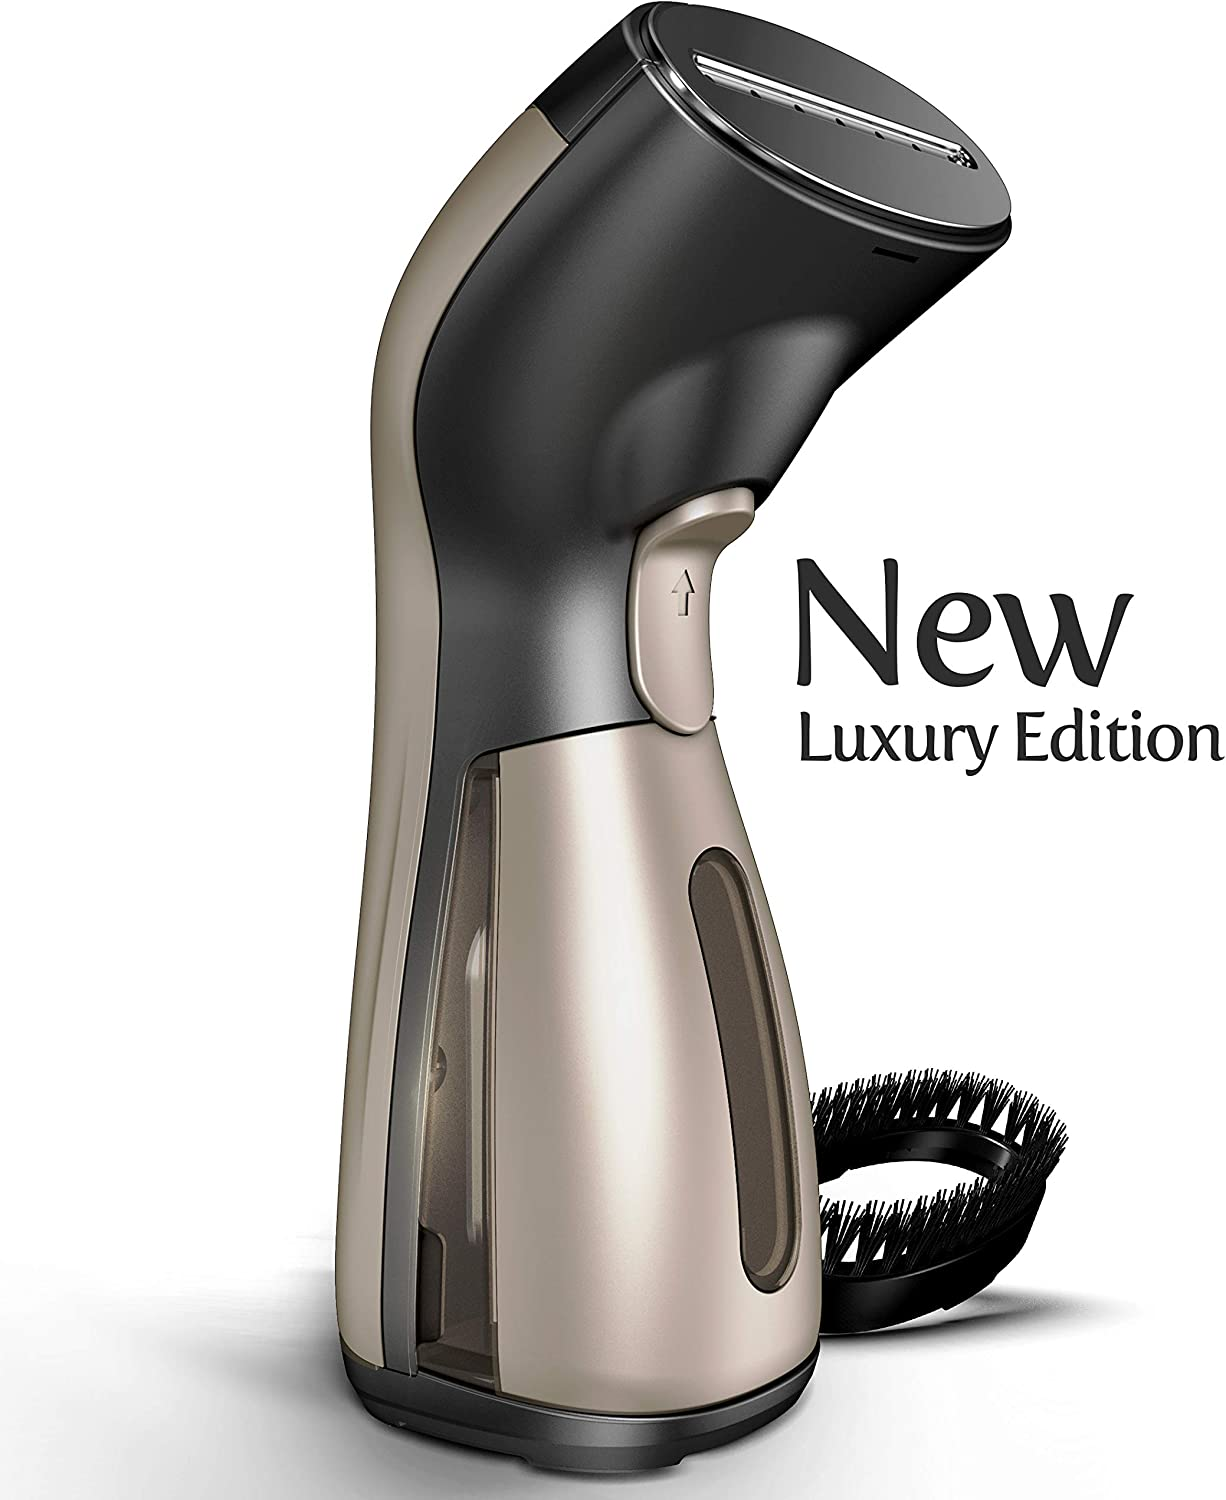 Steamer for Clothes [Luxury Edition] Powerful Dry Steam. Multi-Task: Fabric Wrinkle Remover- Clean- Refresh. Handheld Clothing Accessory. for All Kind of Garments. Home/Travel